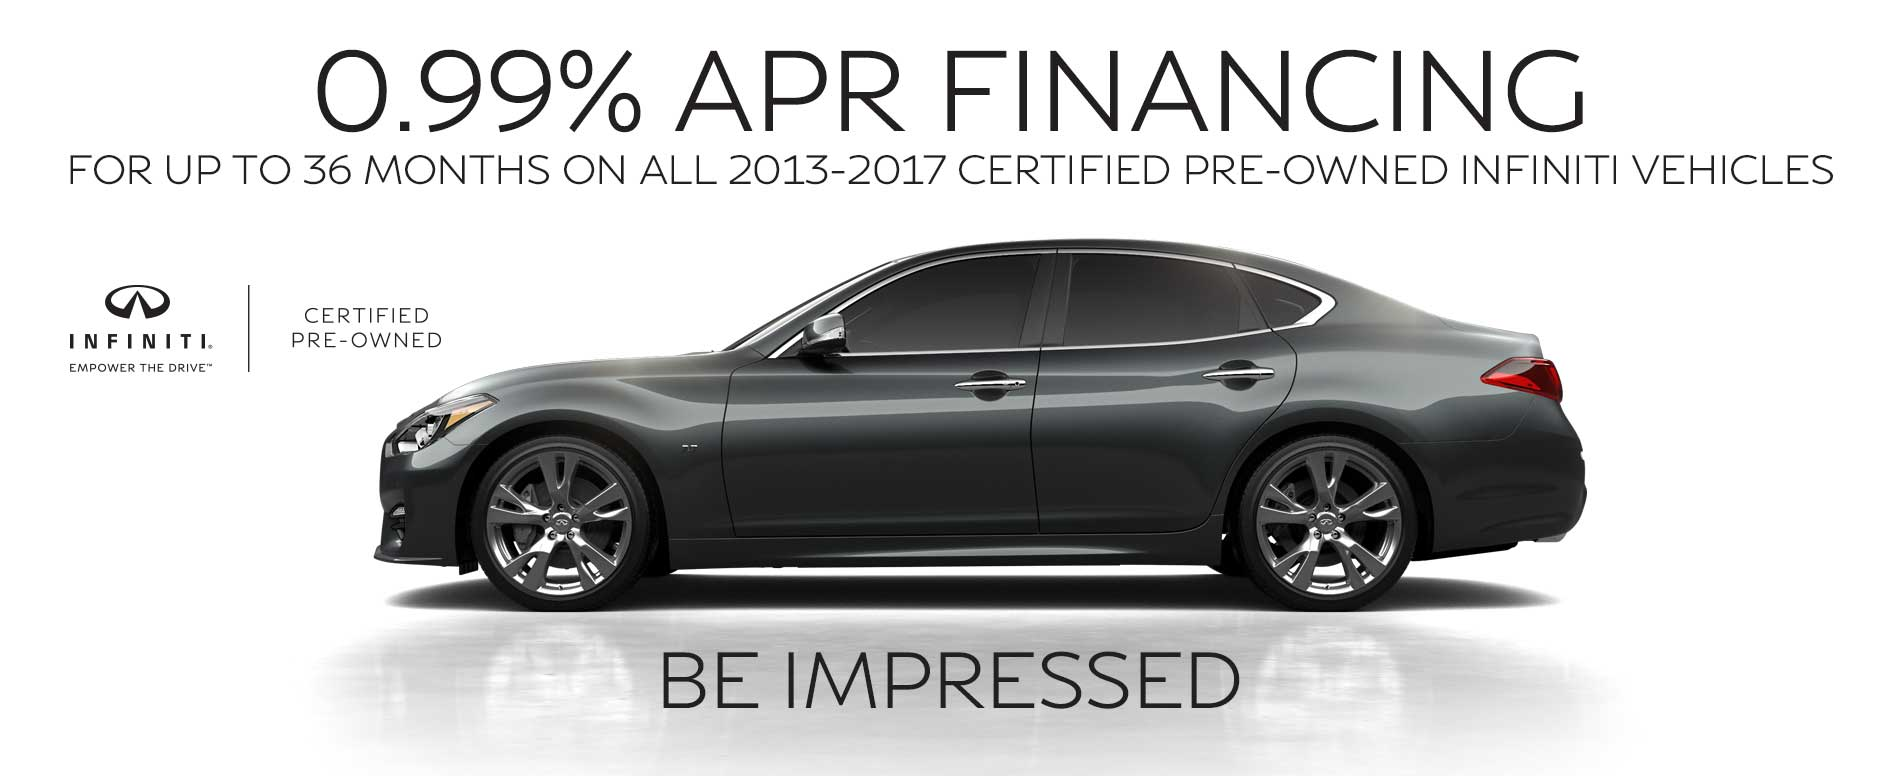 0.99% APR Financing for up to 36 months on all 2013-2017 Certified Pre-Owned INFINITI vehicles.